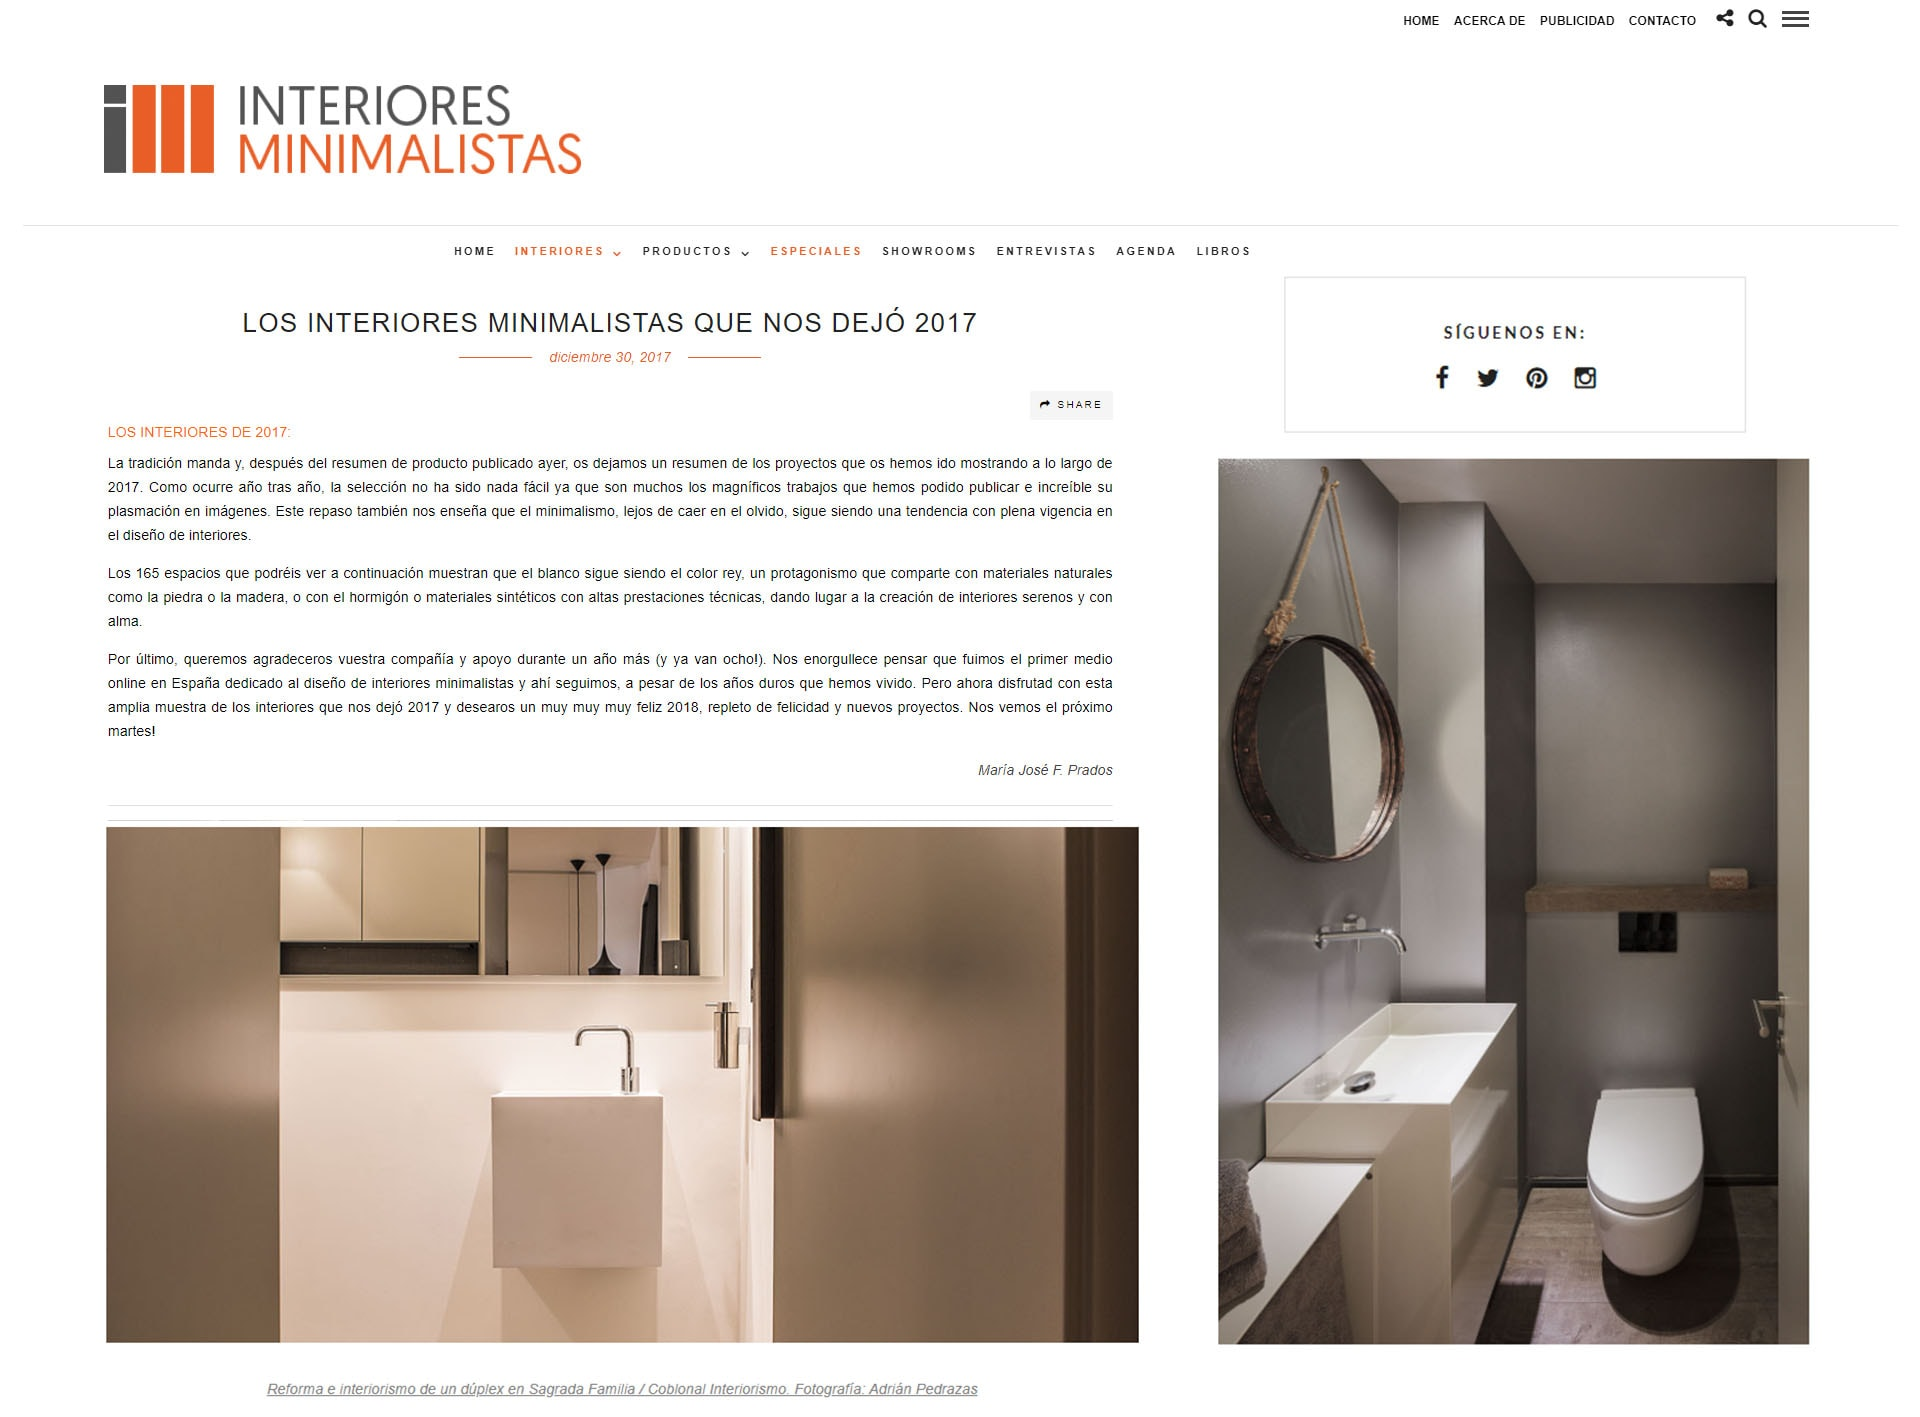 Publication of two projects of Coblonal Interiorismo in the magazine Interiores Minimalistas